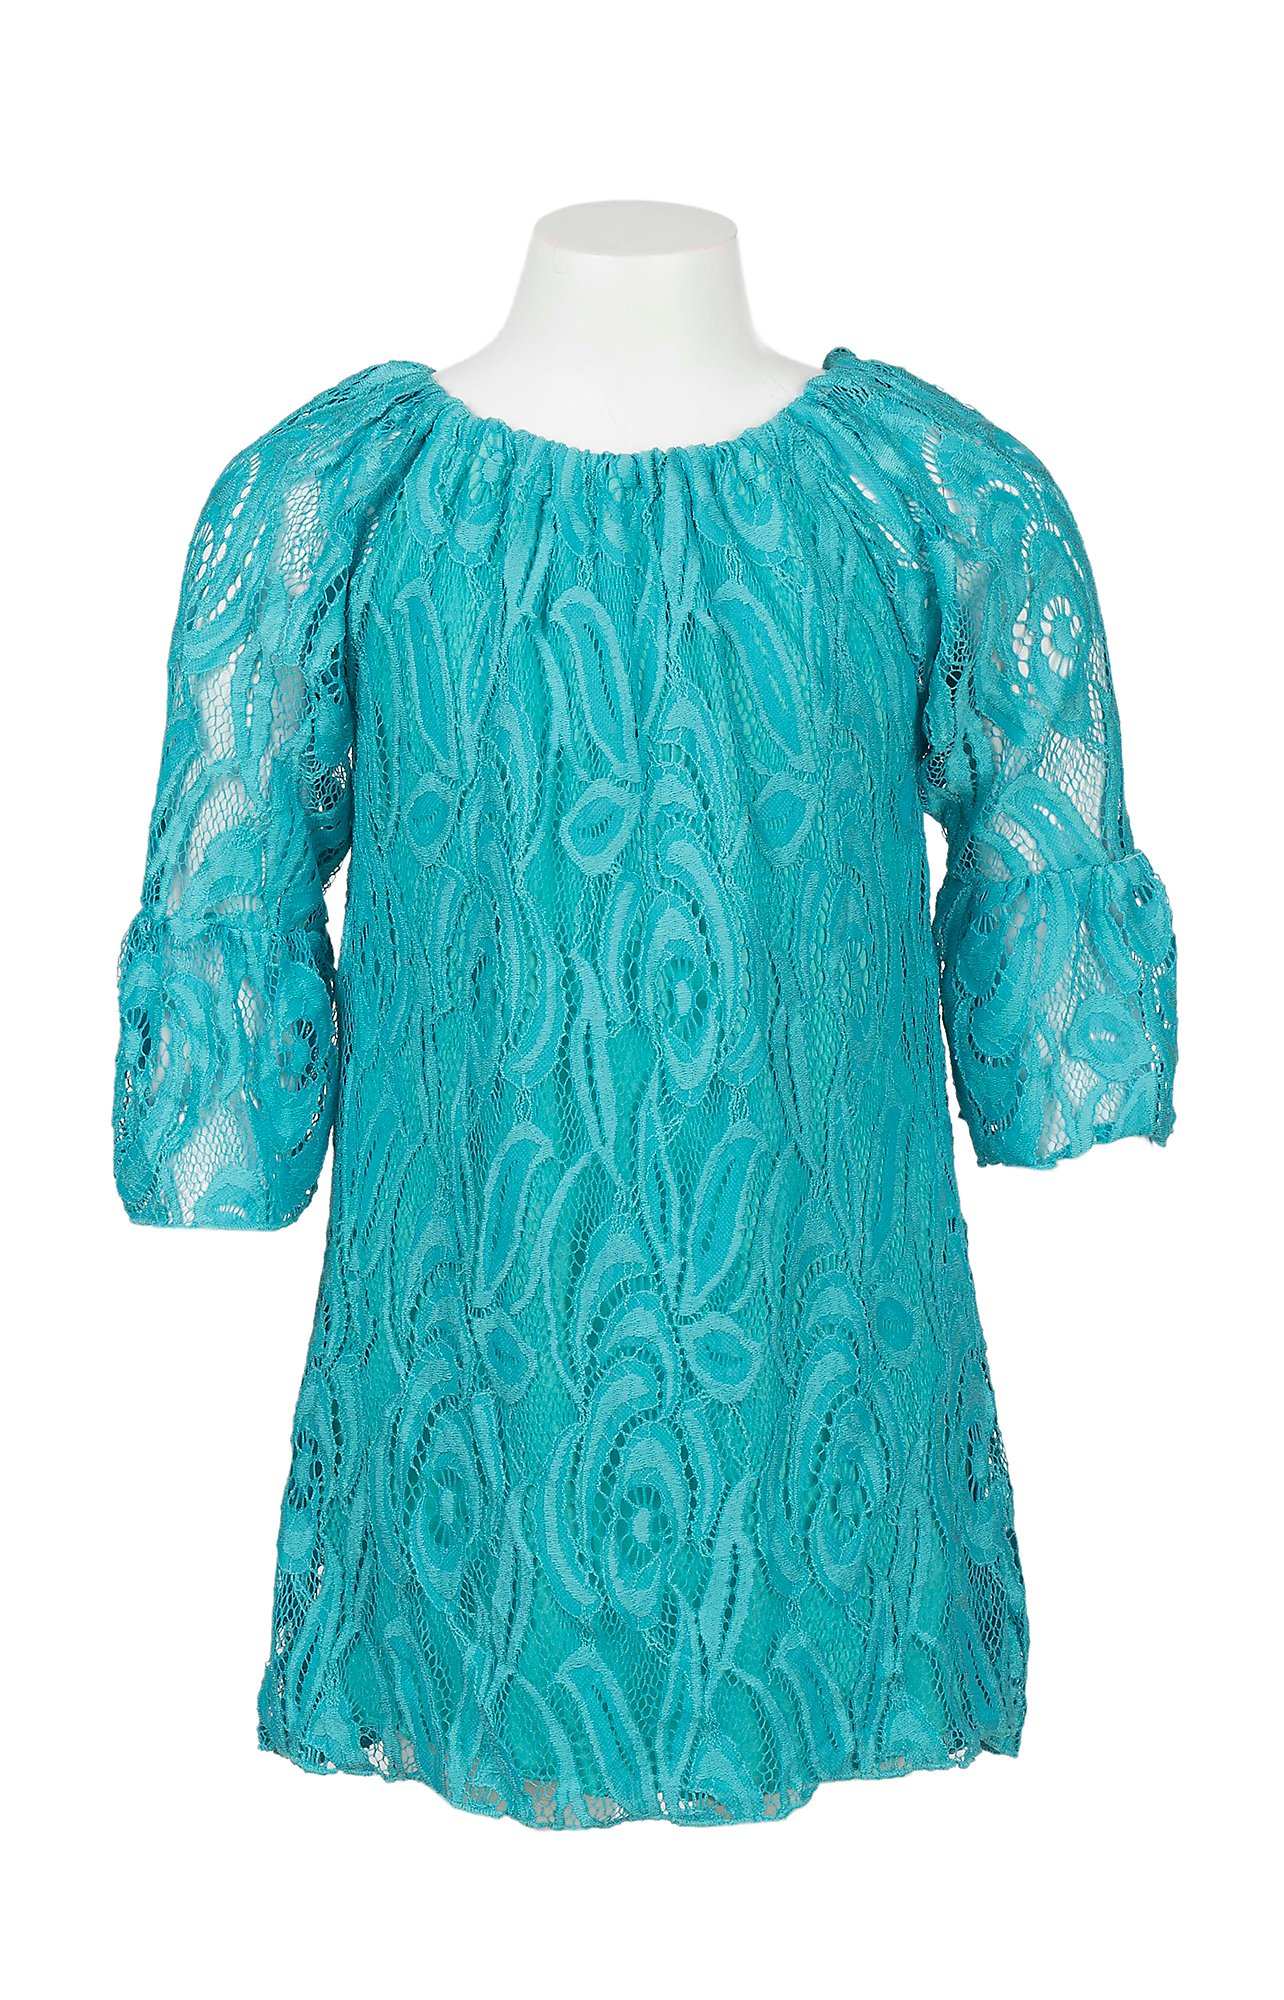 Lore Mae Girl's Turquoise Lace Long Sleeve Dress | Cavender's